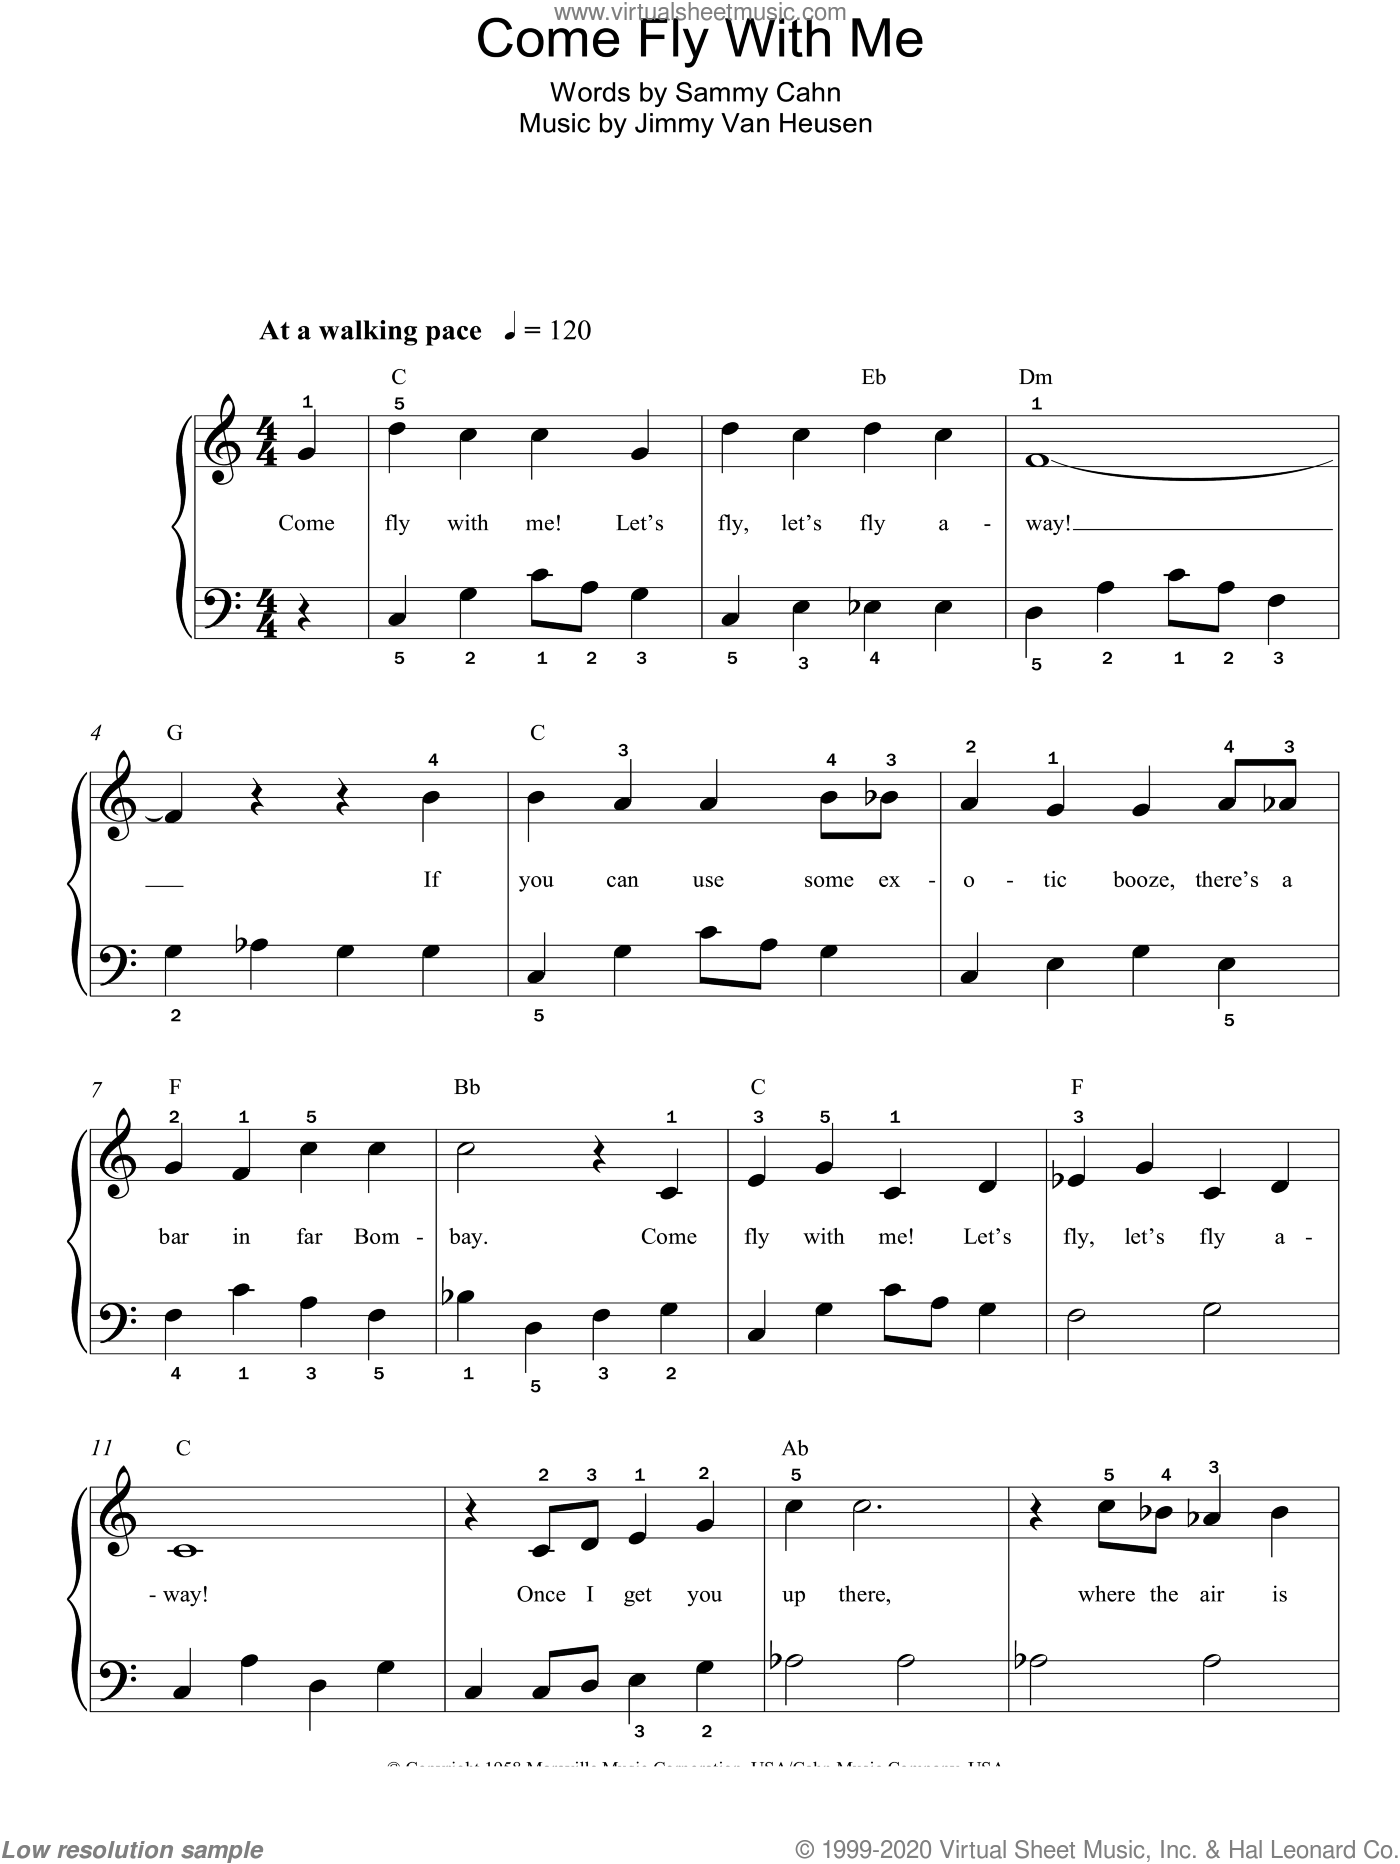 Come Fly With Me sheet music for piano solo (chords) by Jimmy Van Heusen